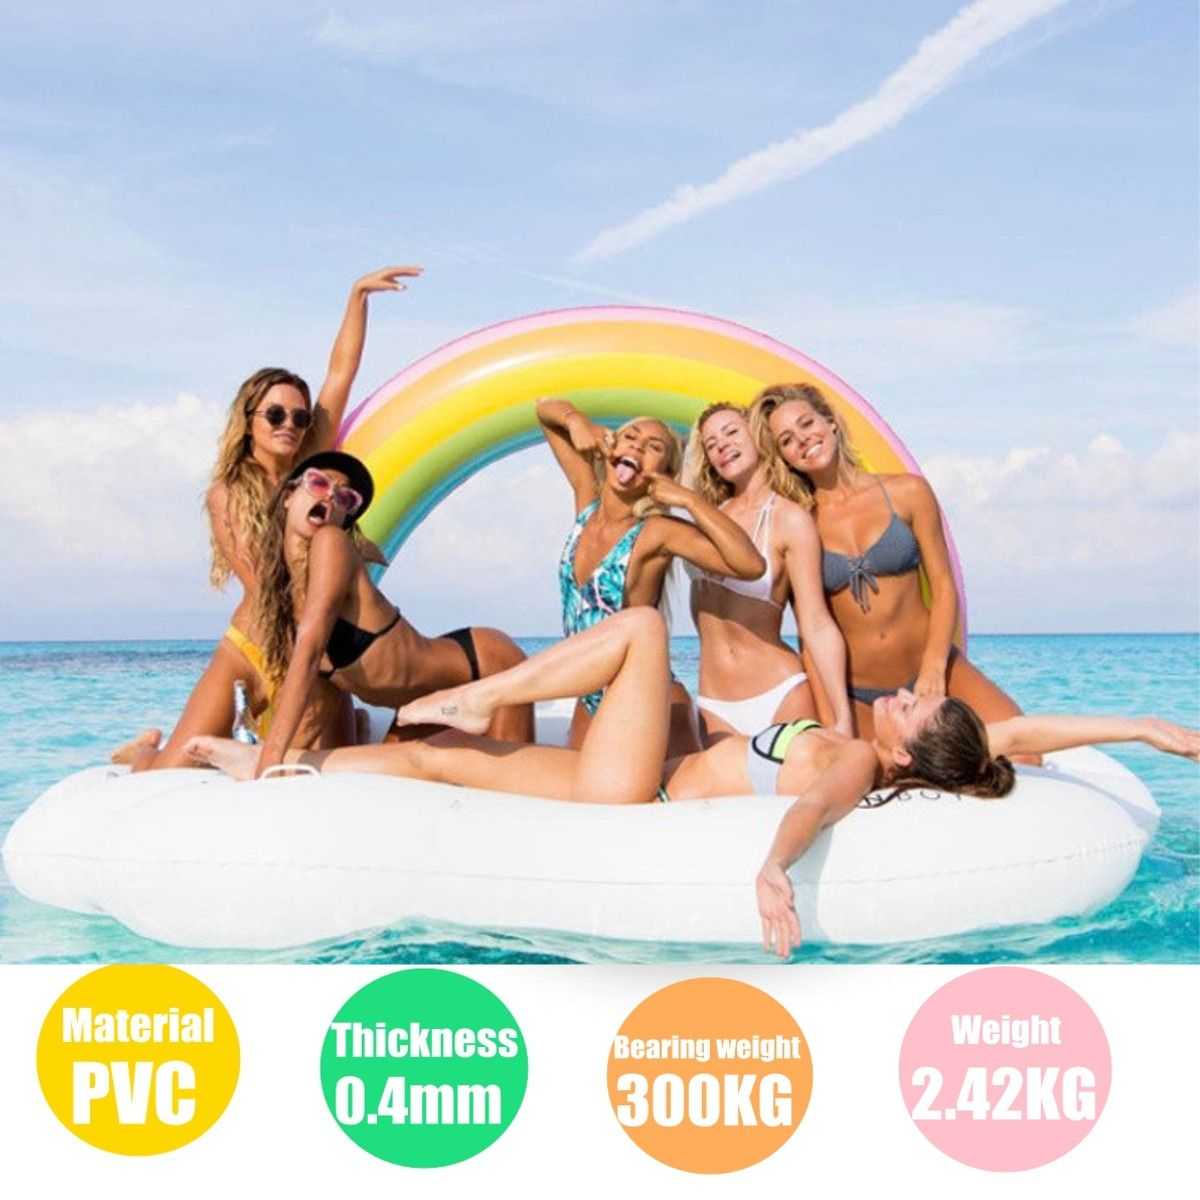 195*135*115cm Giant Inflatable Rainbow Cloud Float Raft Swimming Pool Play PVC Toys For Adult Tube Raft Kid Ring Water Toy